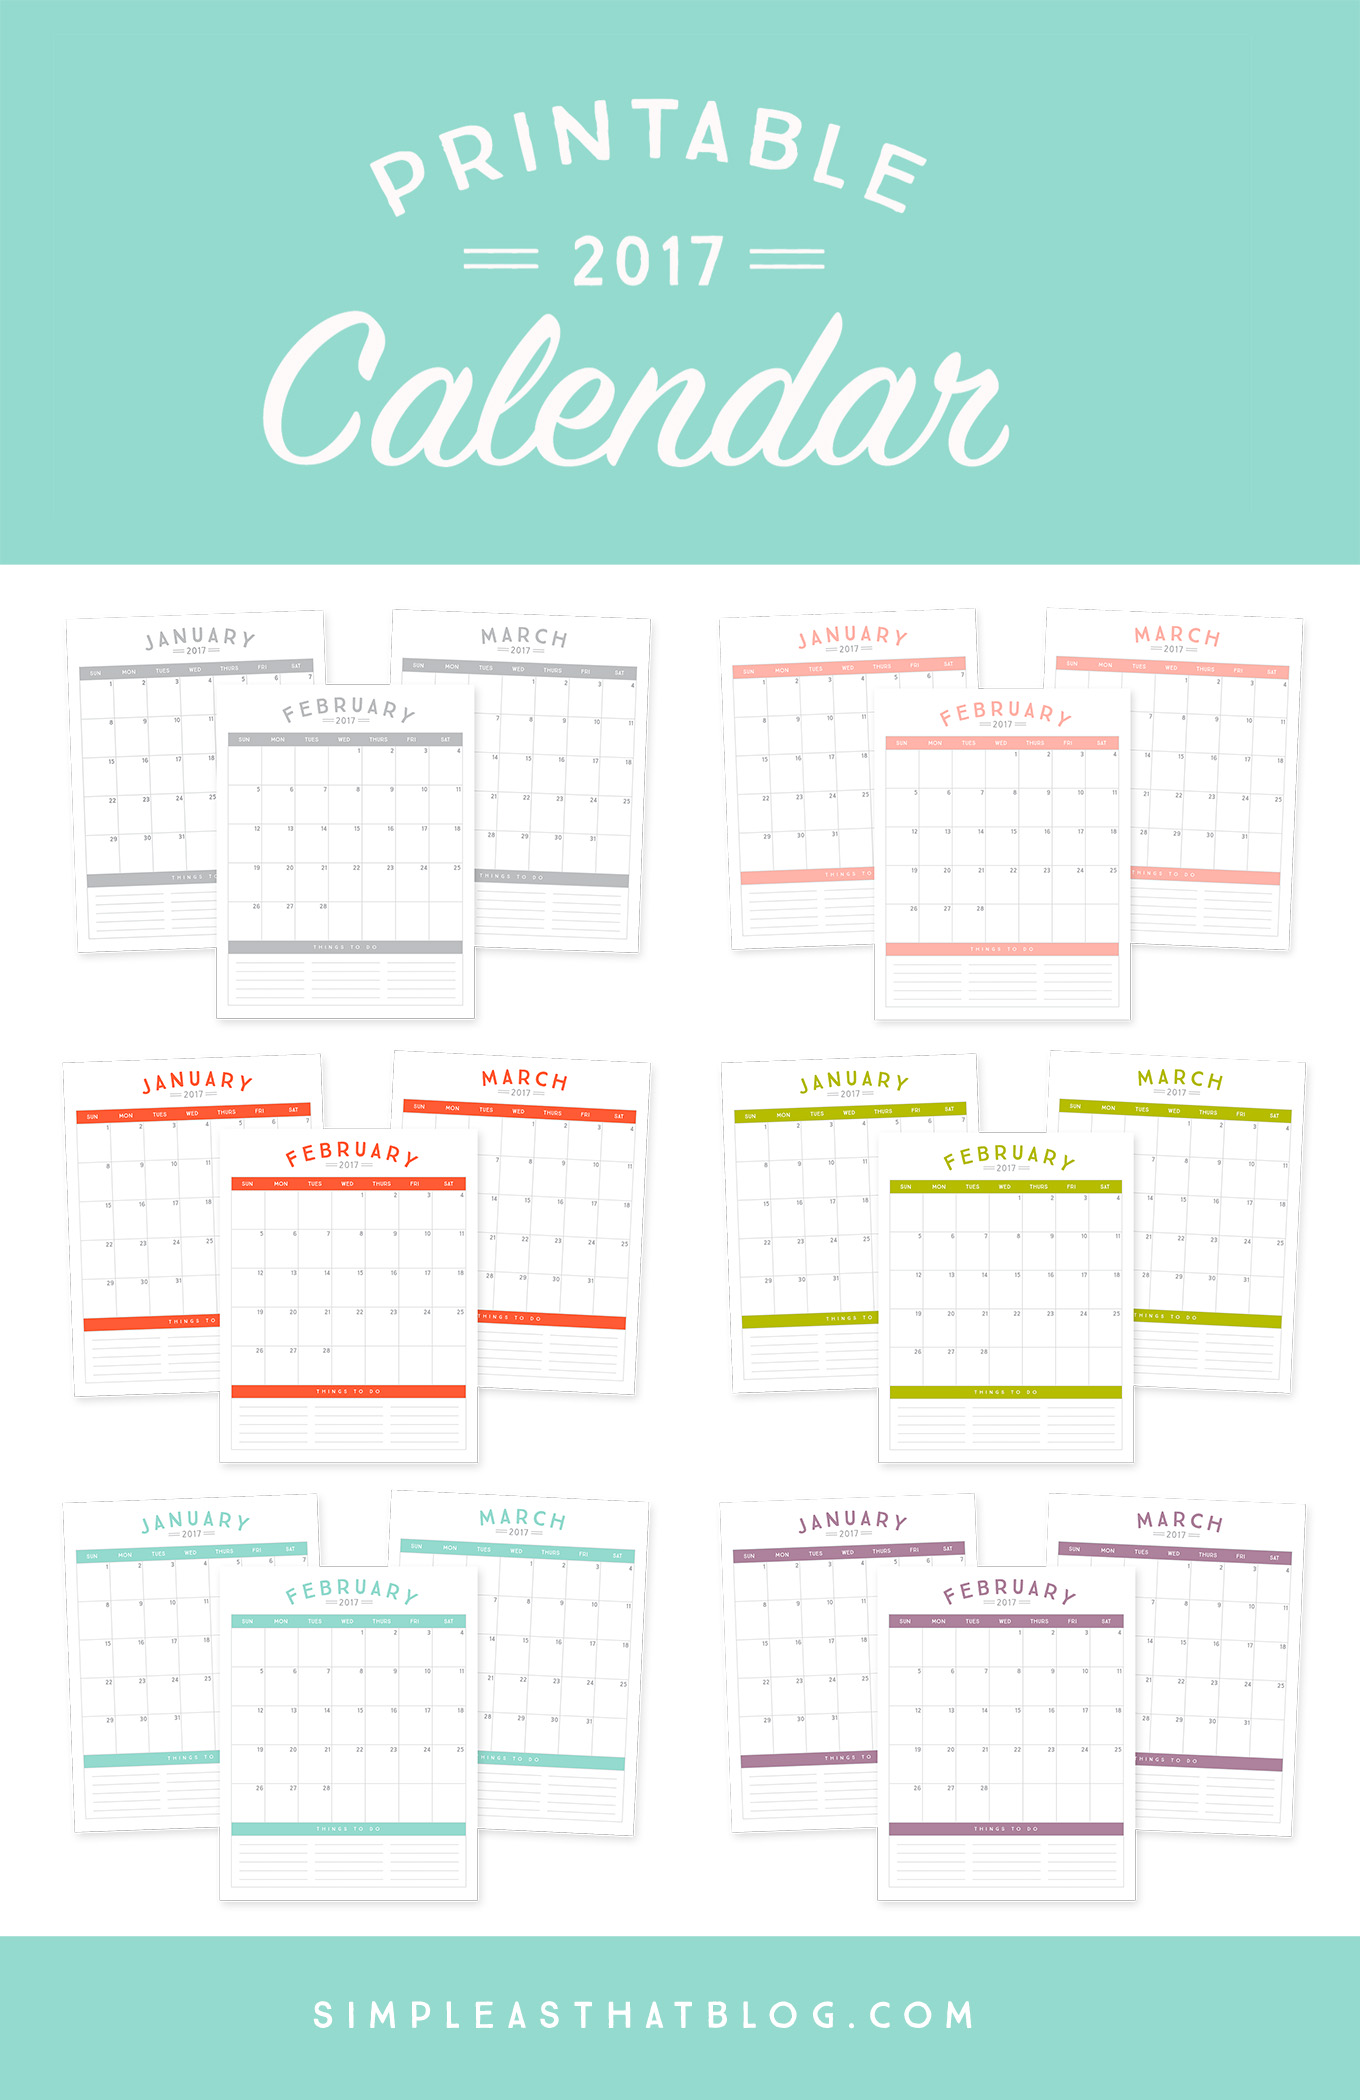 Get organized in the New Year with these 2017 Printable Calendars – available in 6 gorgeous colors!